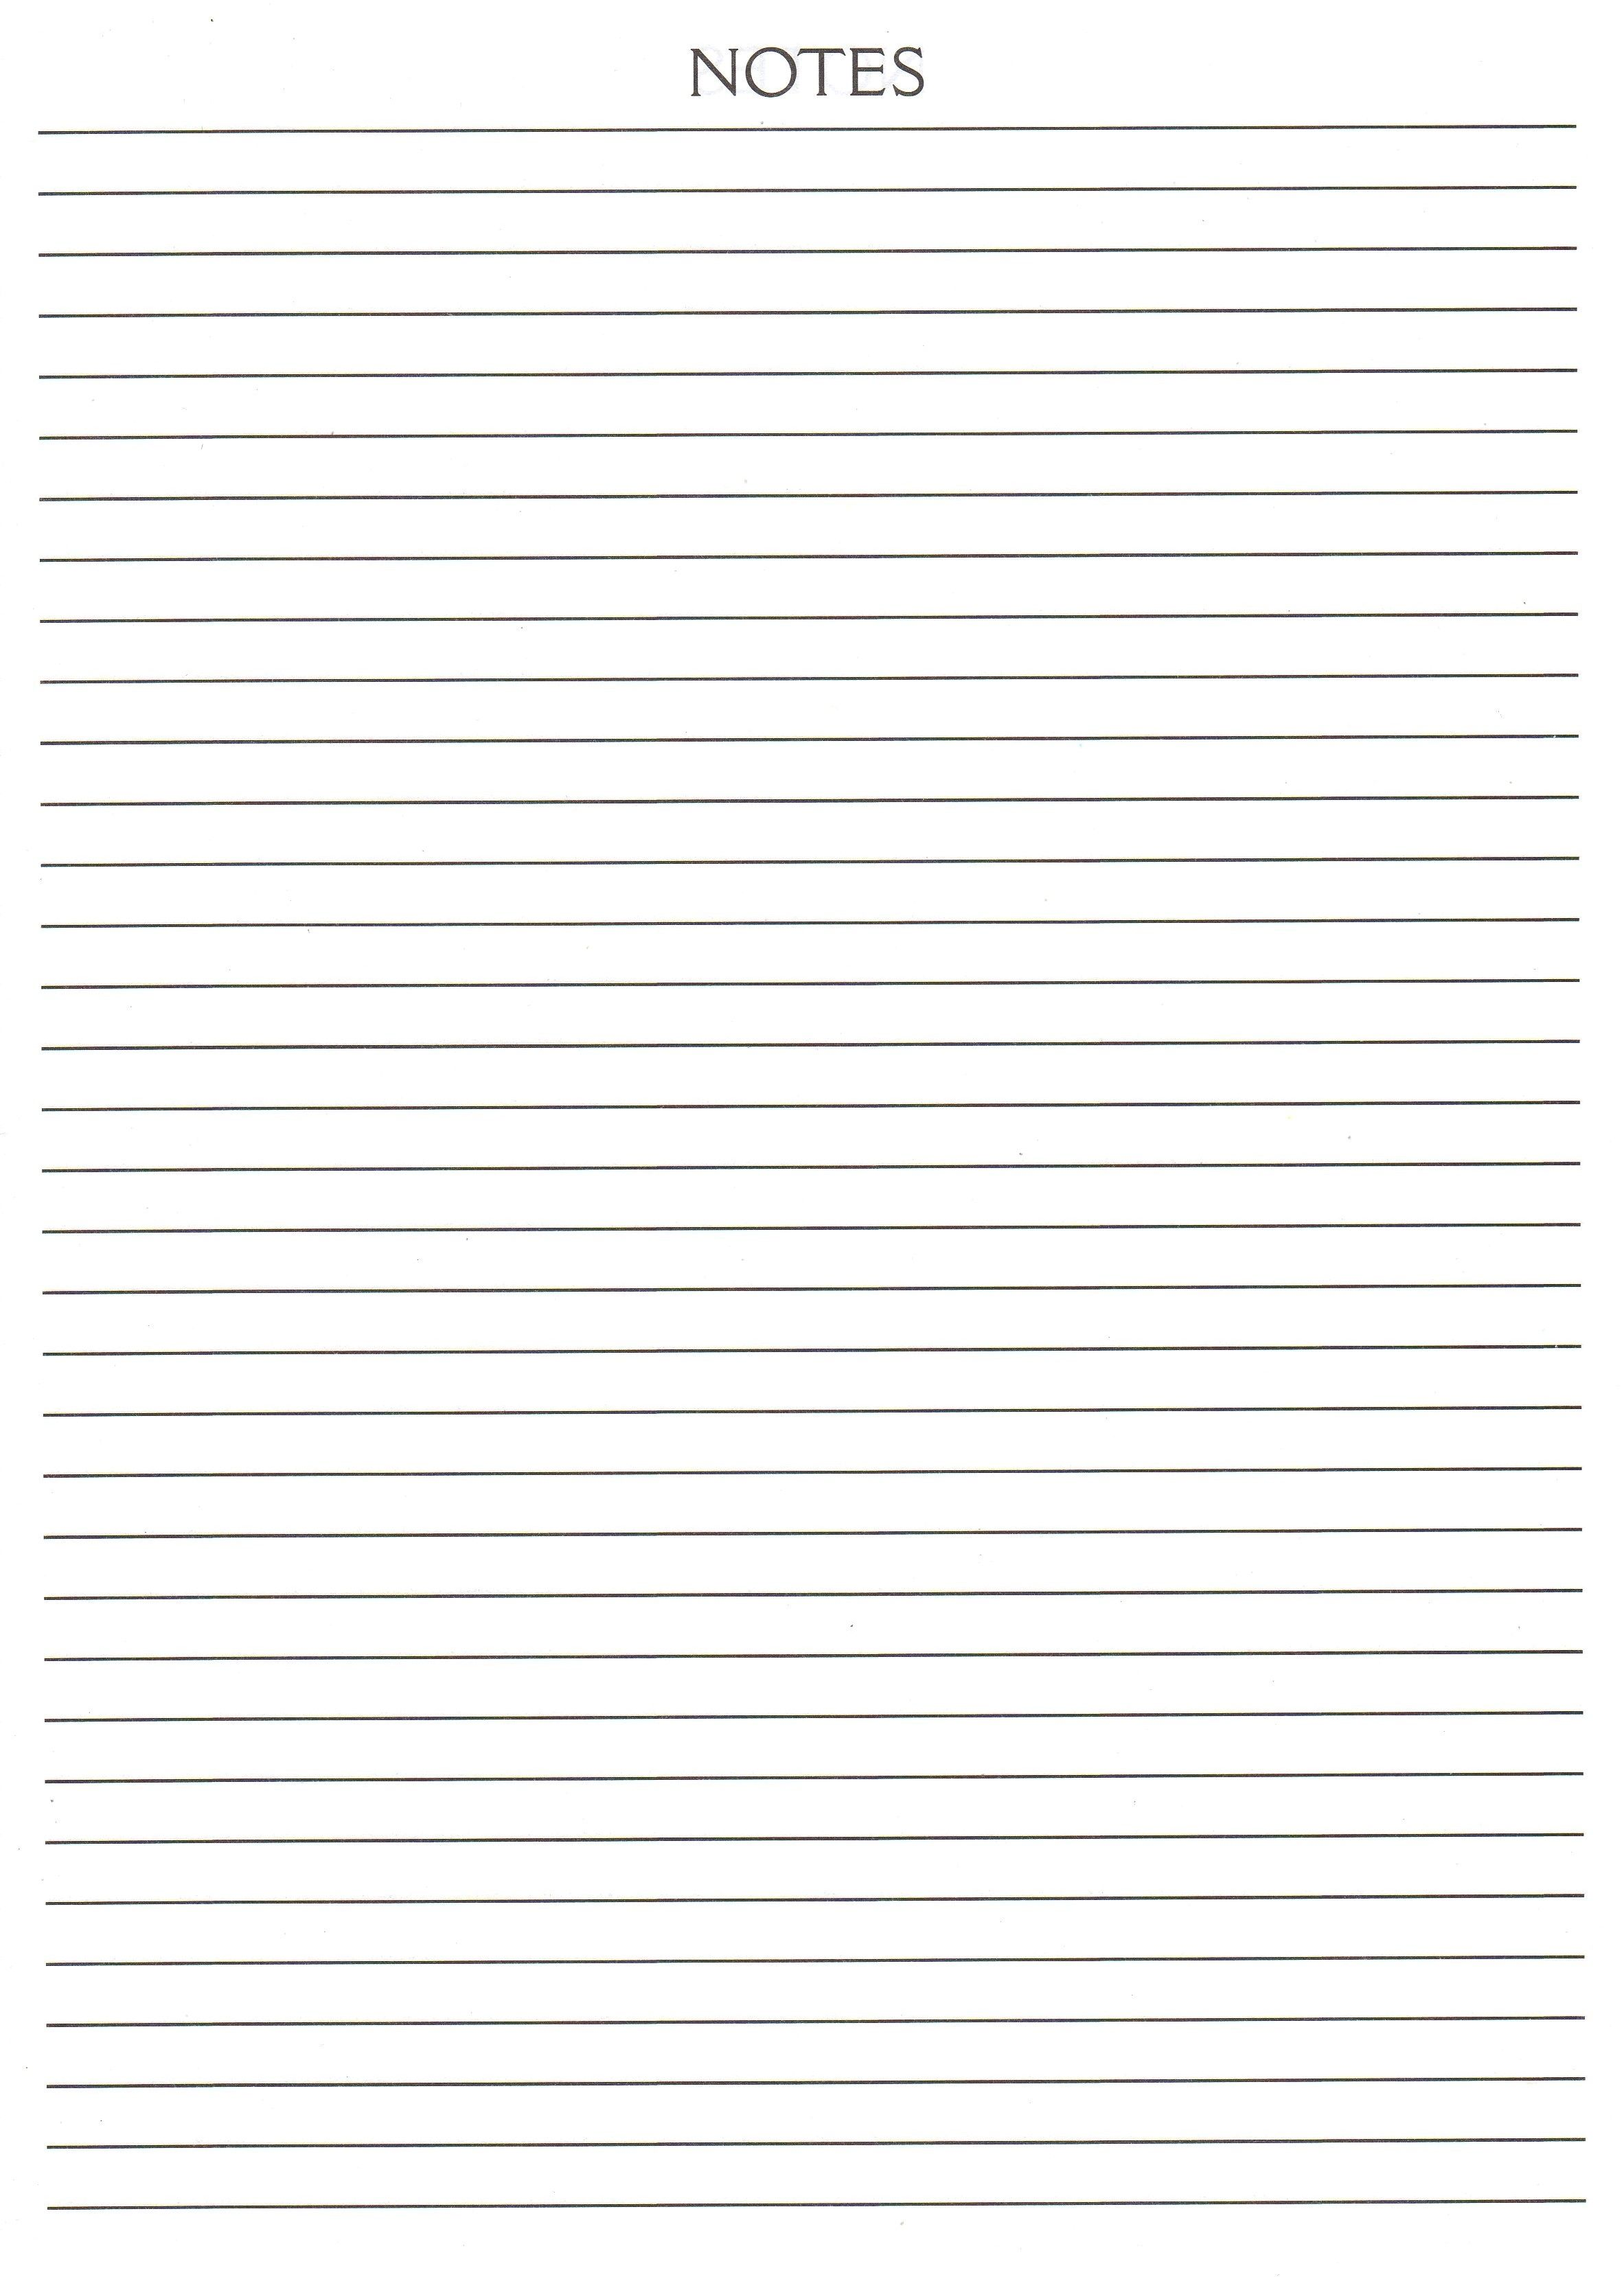 basic notebook page template fyi pinterest